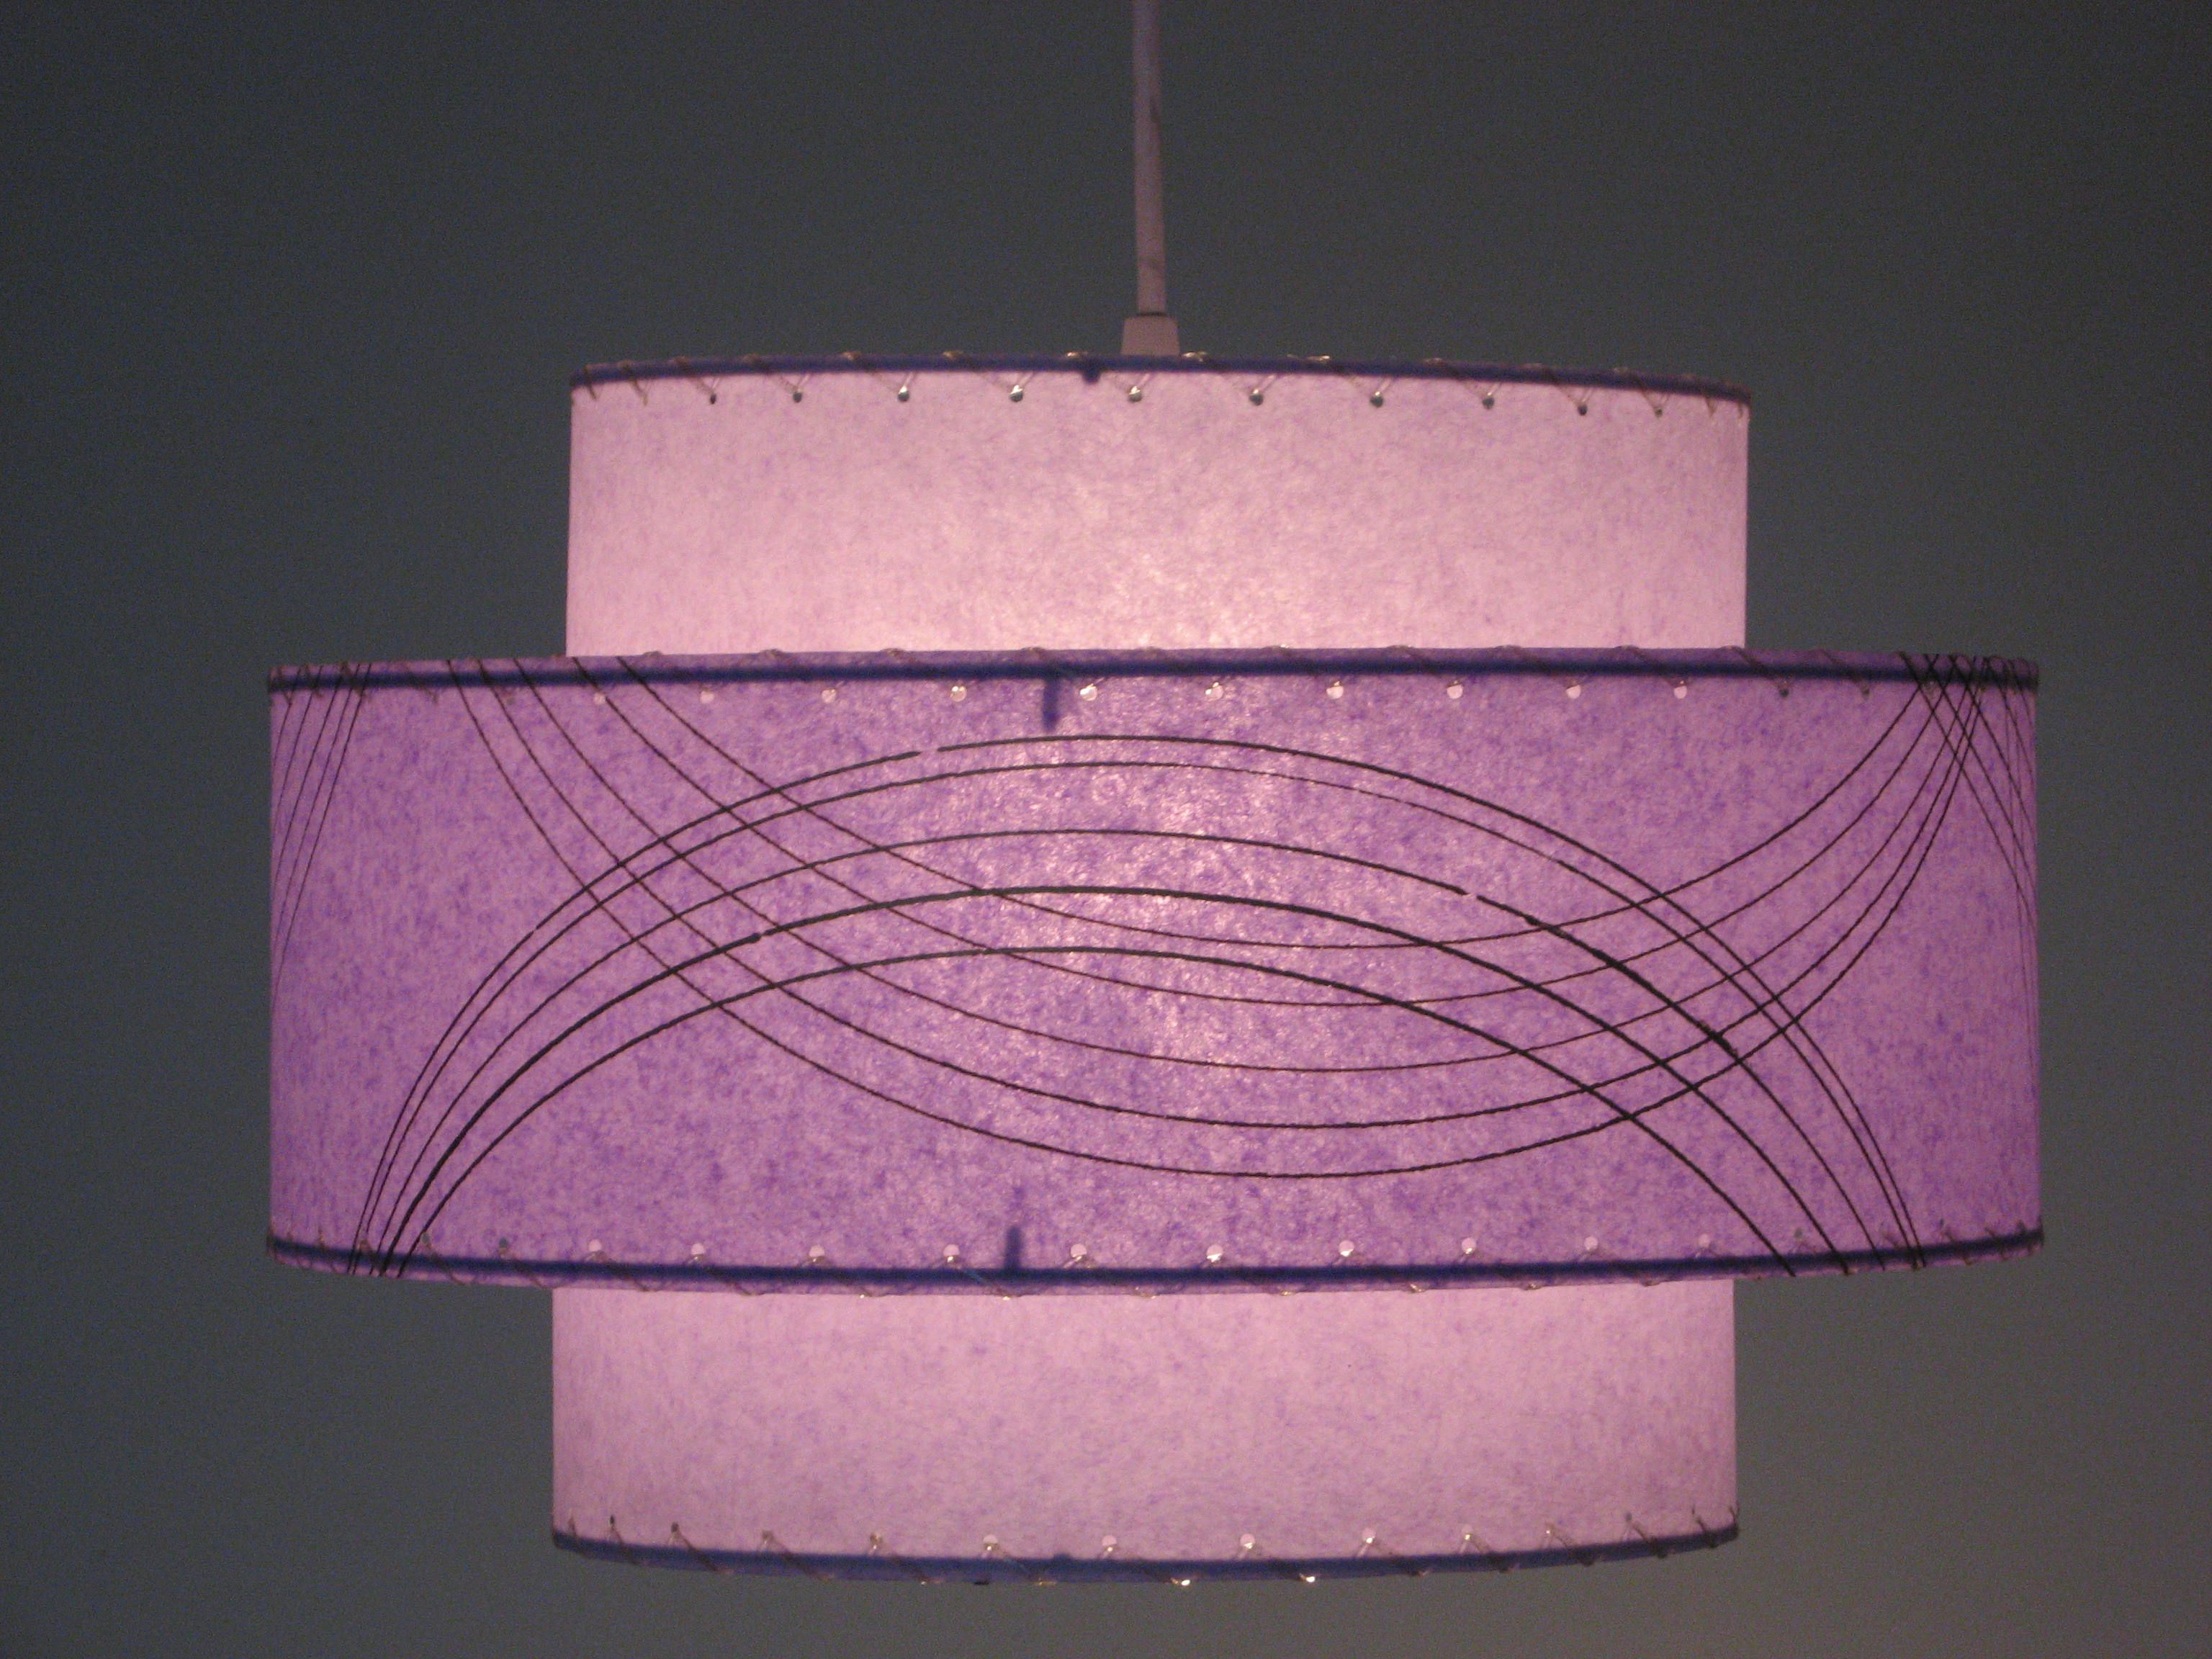 Holy retro love this lamp shadependant lamp furniture purple silk lamp shade purple suede lamp shade small purple table lamp shade purple table lamp shade purple table lamps fabulous purple lamp shade for any geotapseo Gallery